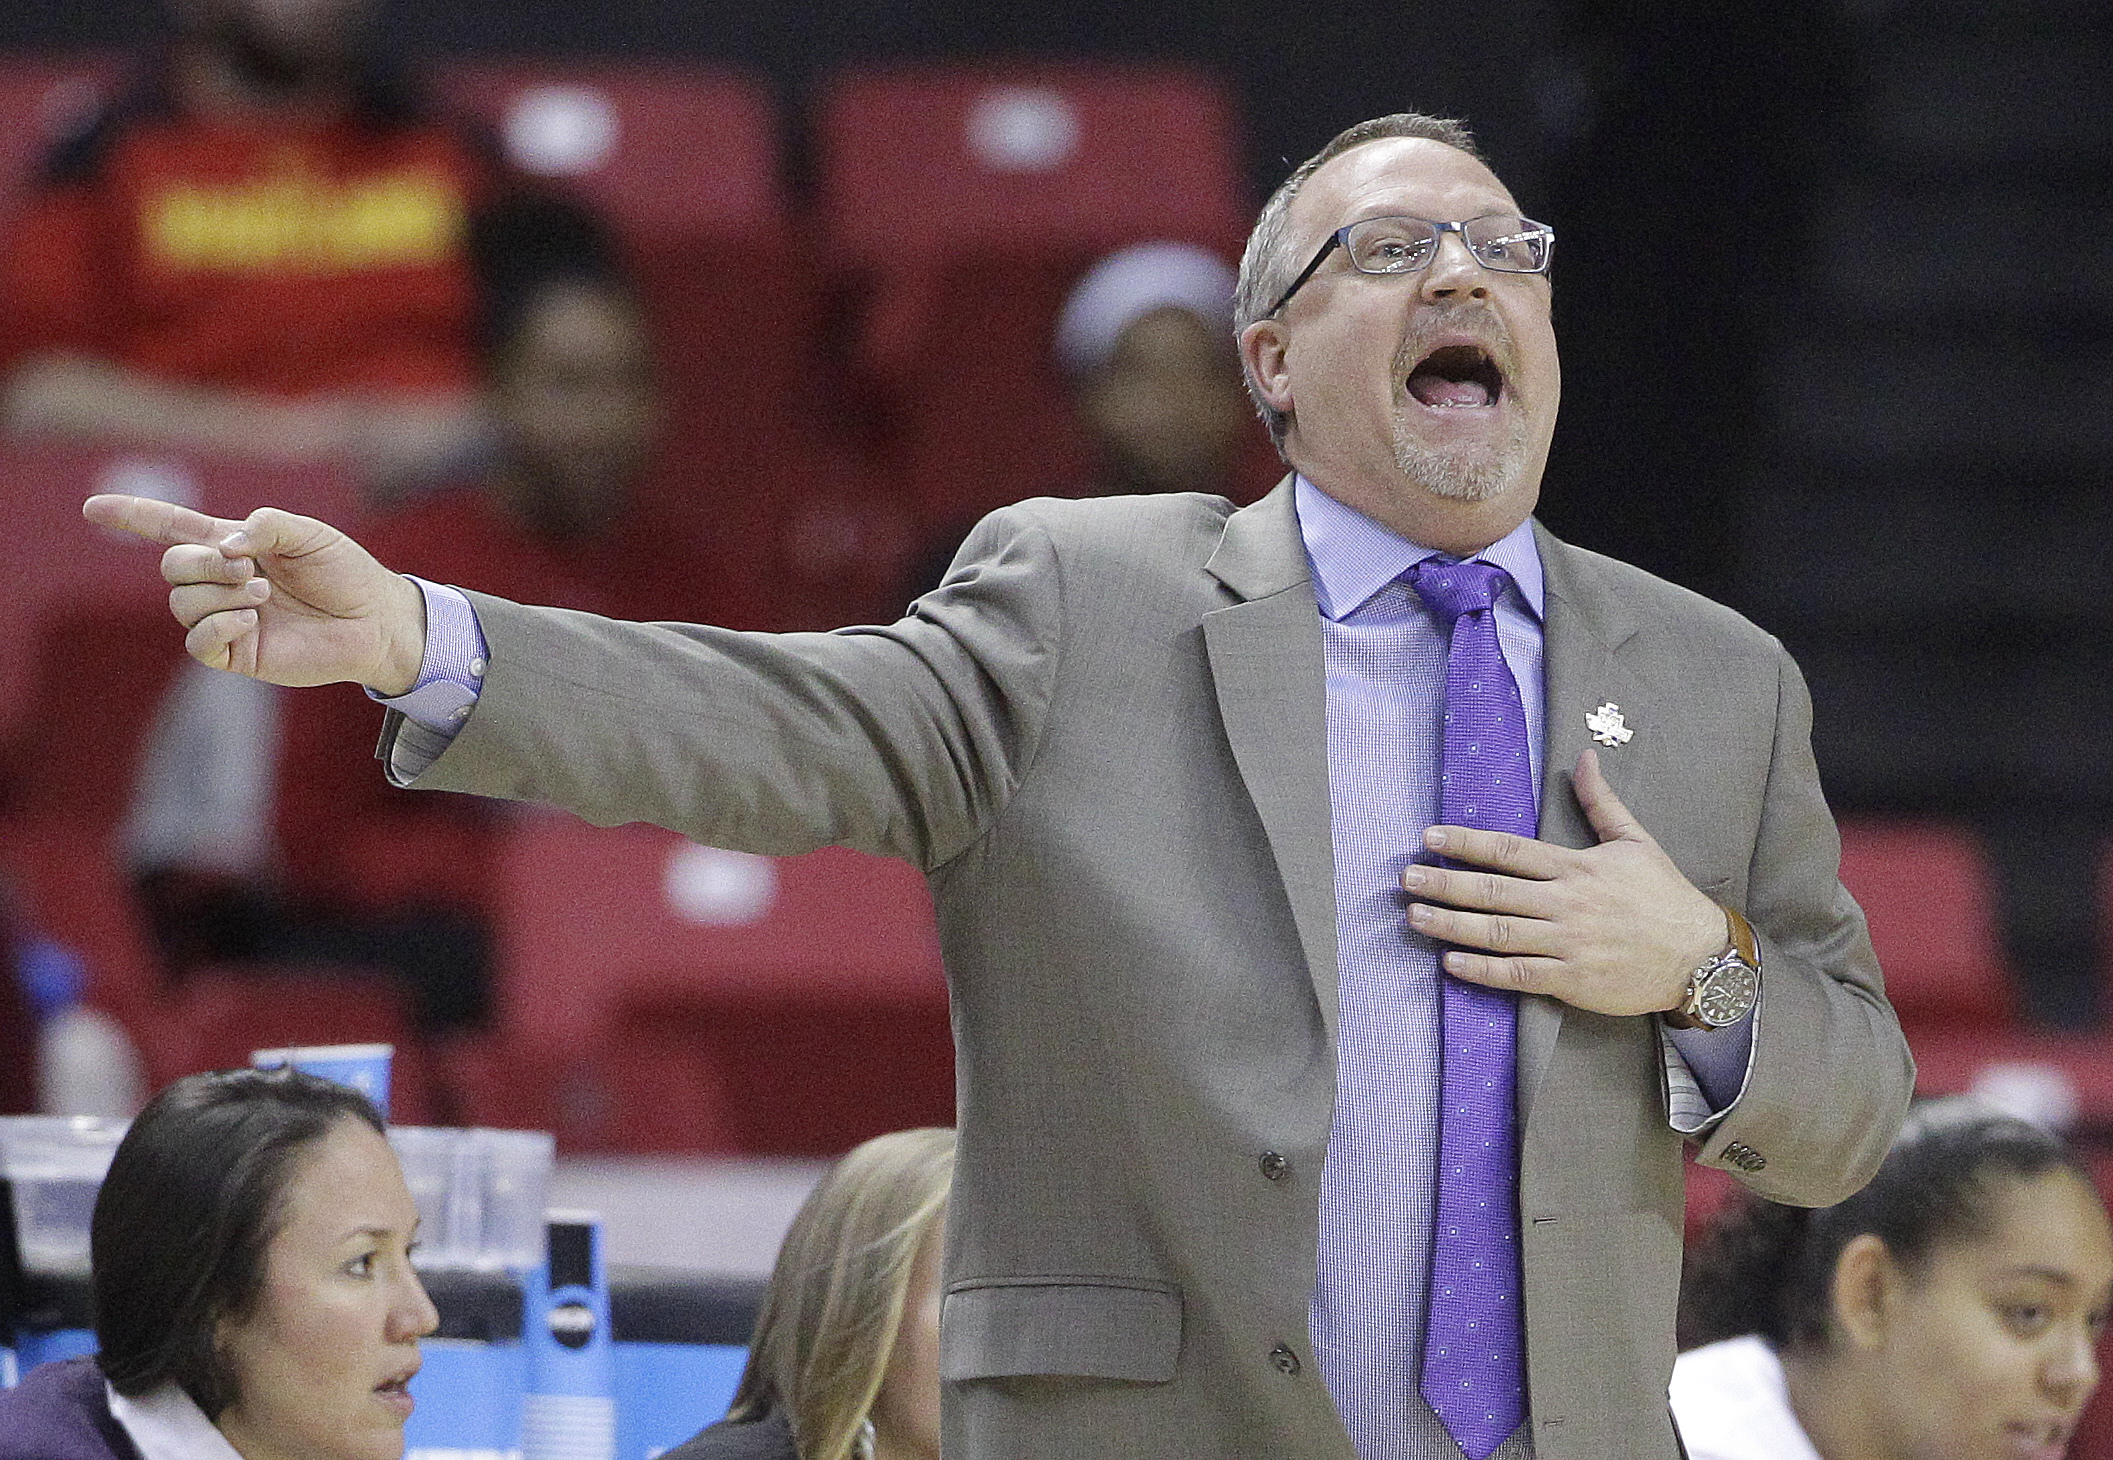 Washington head coach Mike Neighbors directs his players in the first half of an NCAA college basketball game against Maryland in the second round of the NCAA tournament, Monday, March 21, 2016, in College Park, Md. (AP Photo/Patrick Semansky)